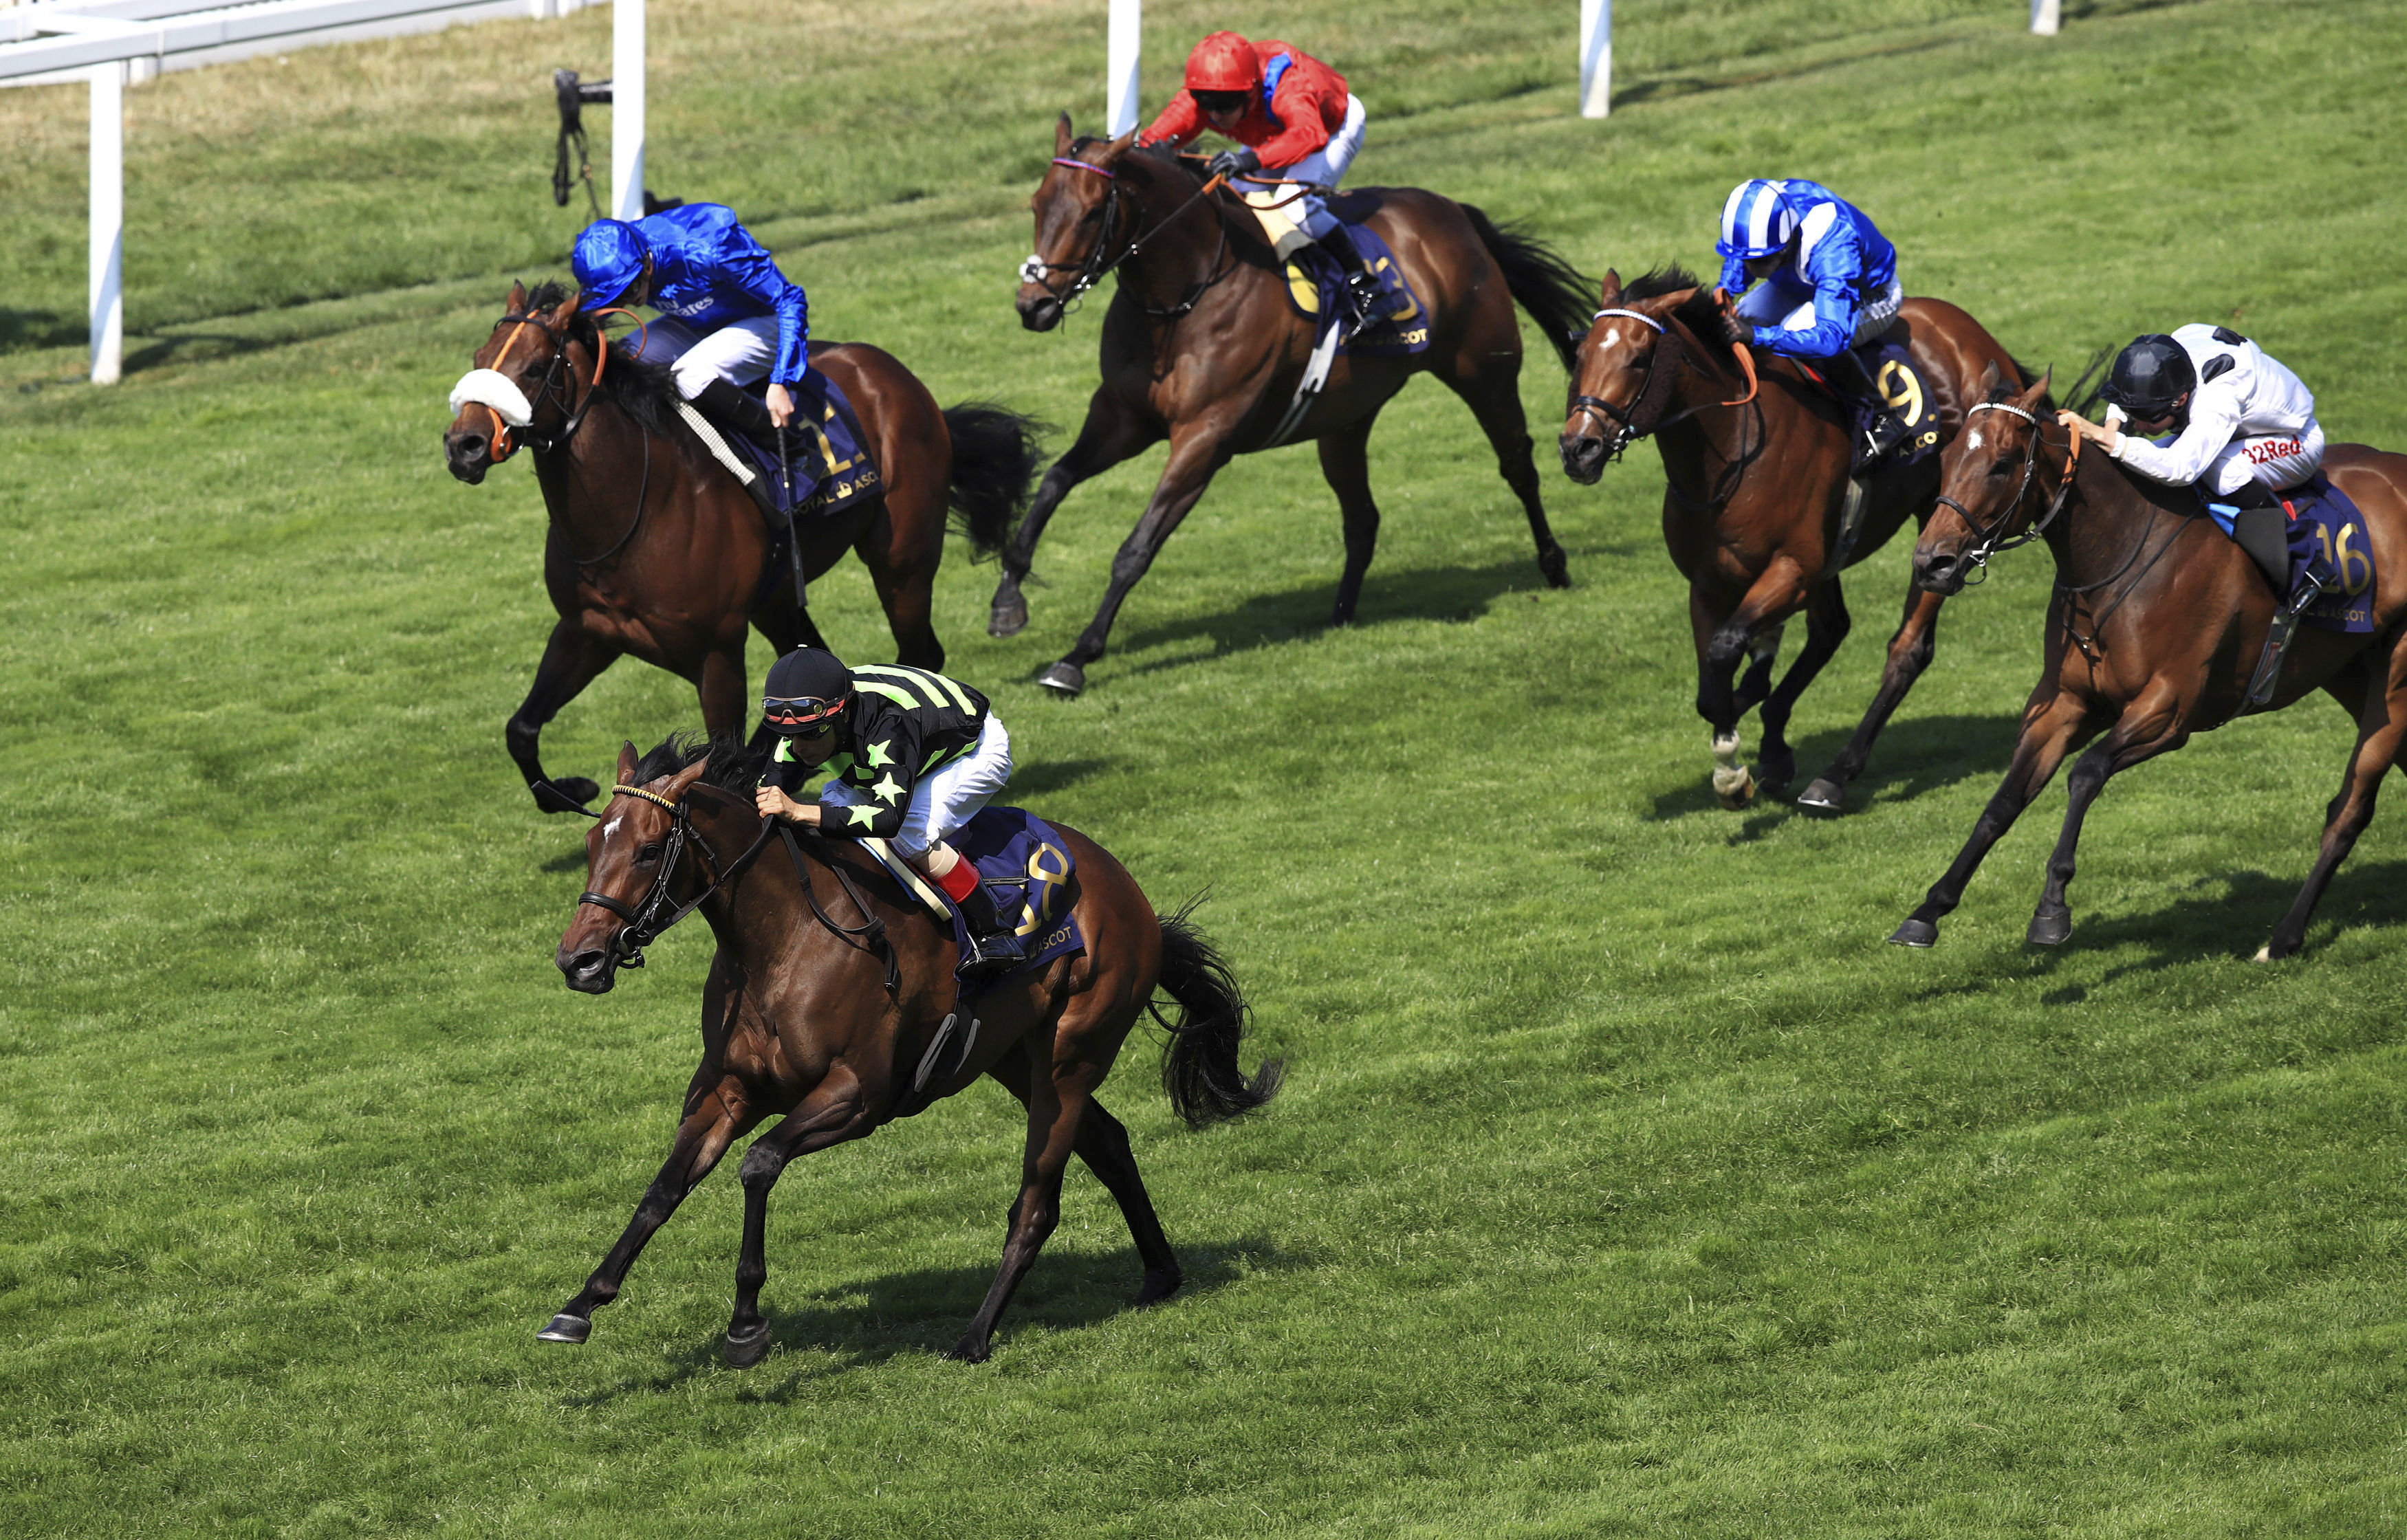 Lady Aurelia ridden by jockey John Velazquez, leads the field as they come home to win the King's Stand Stakes during day one of Royal Ascot at Ascot Racecourse Ascot England Tuesday June 20, 2017. American filly Lady Aurelia won at Royal Ascot for the se